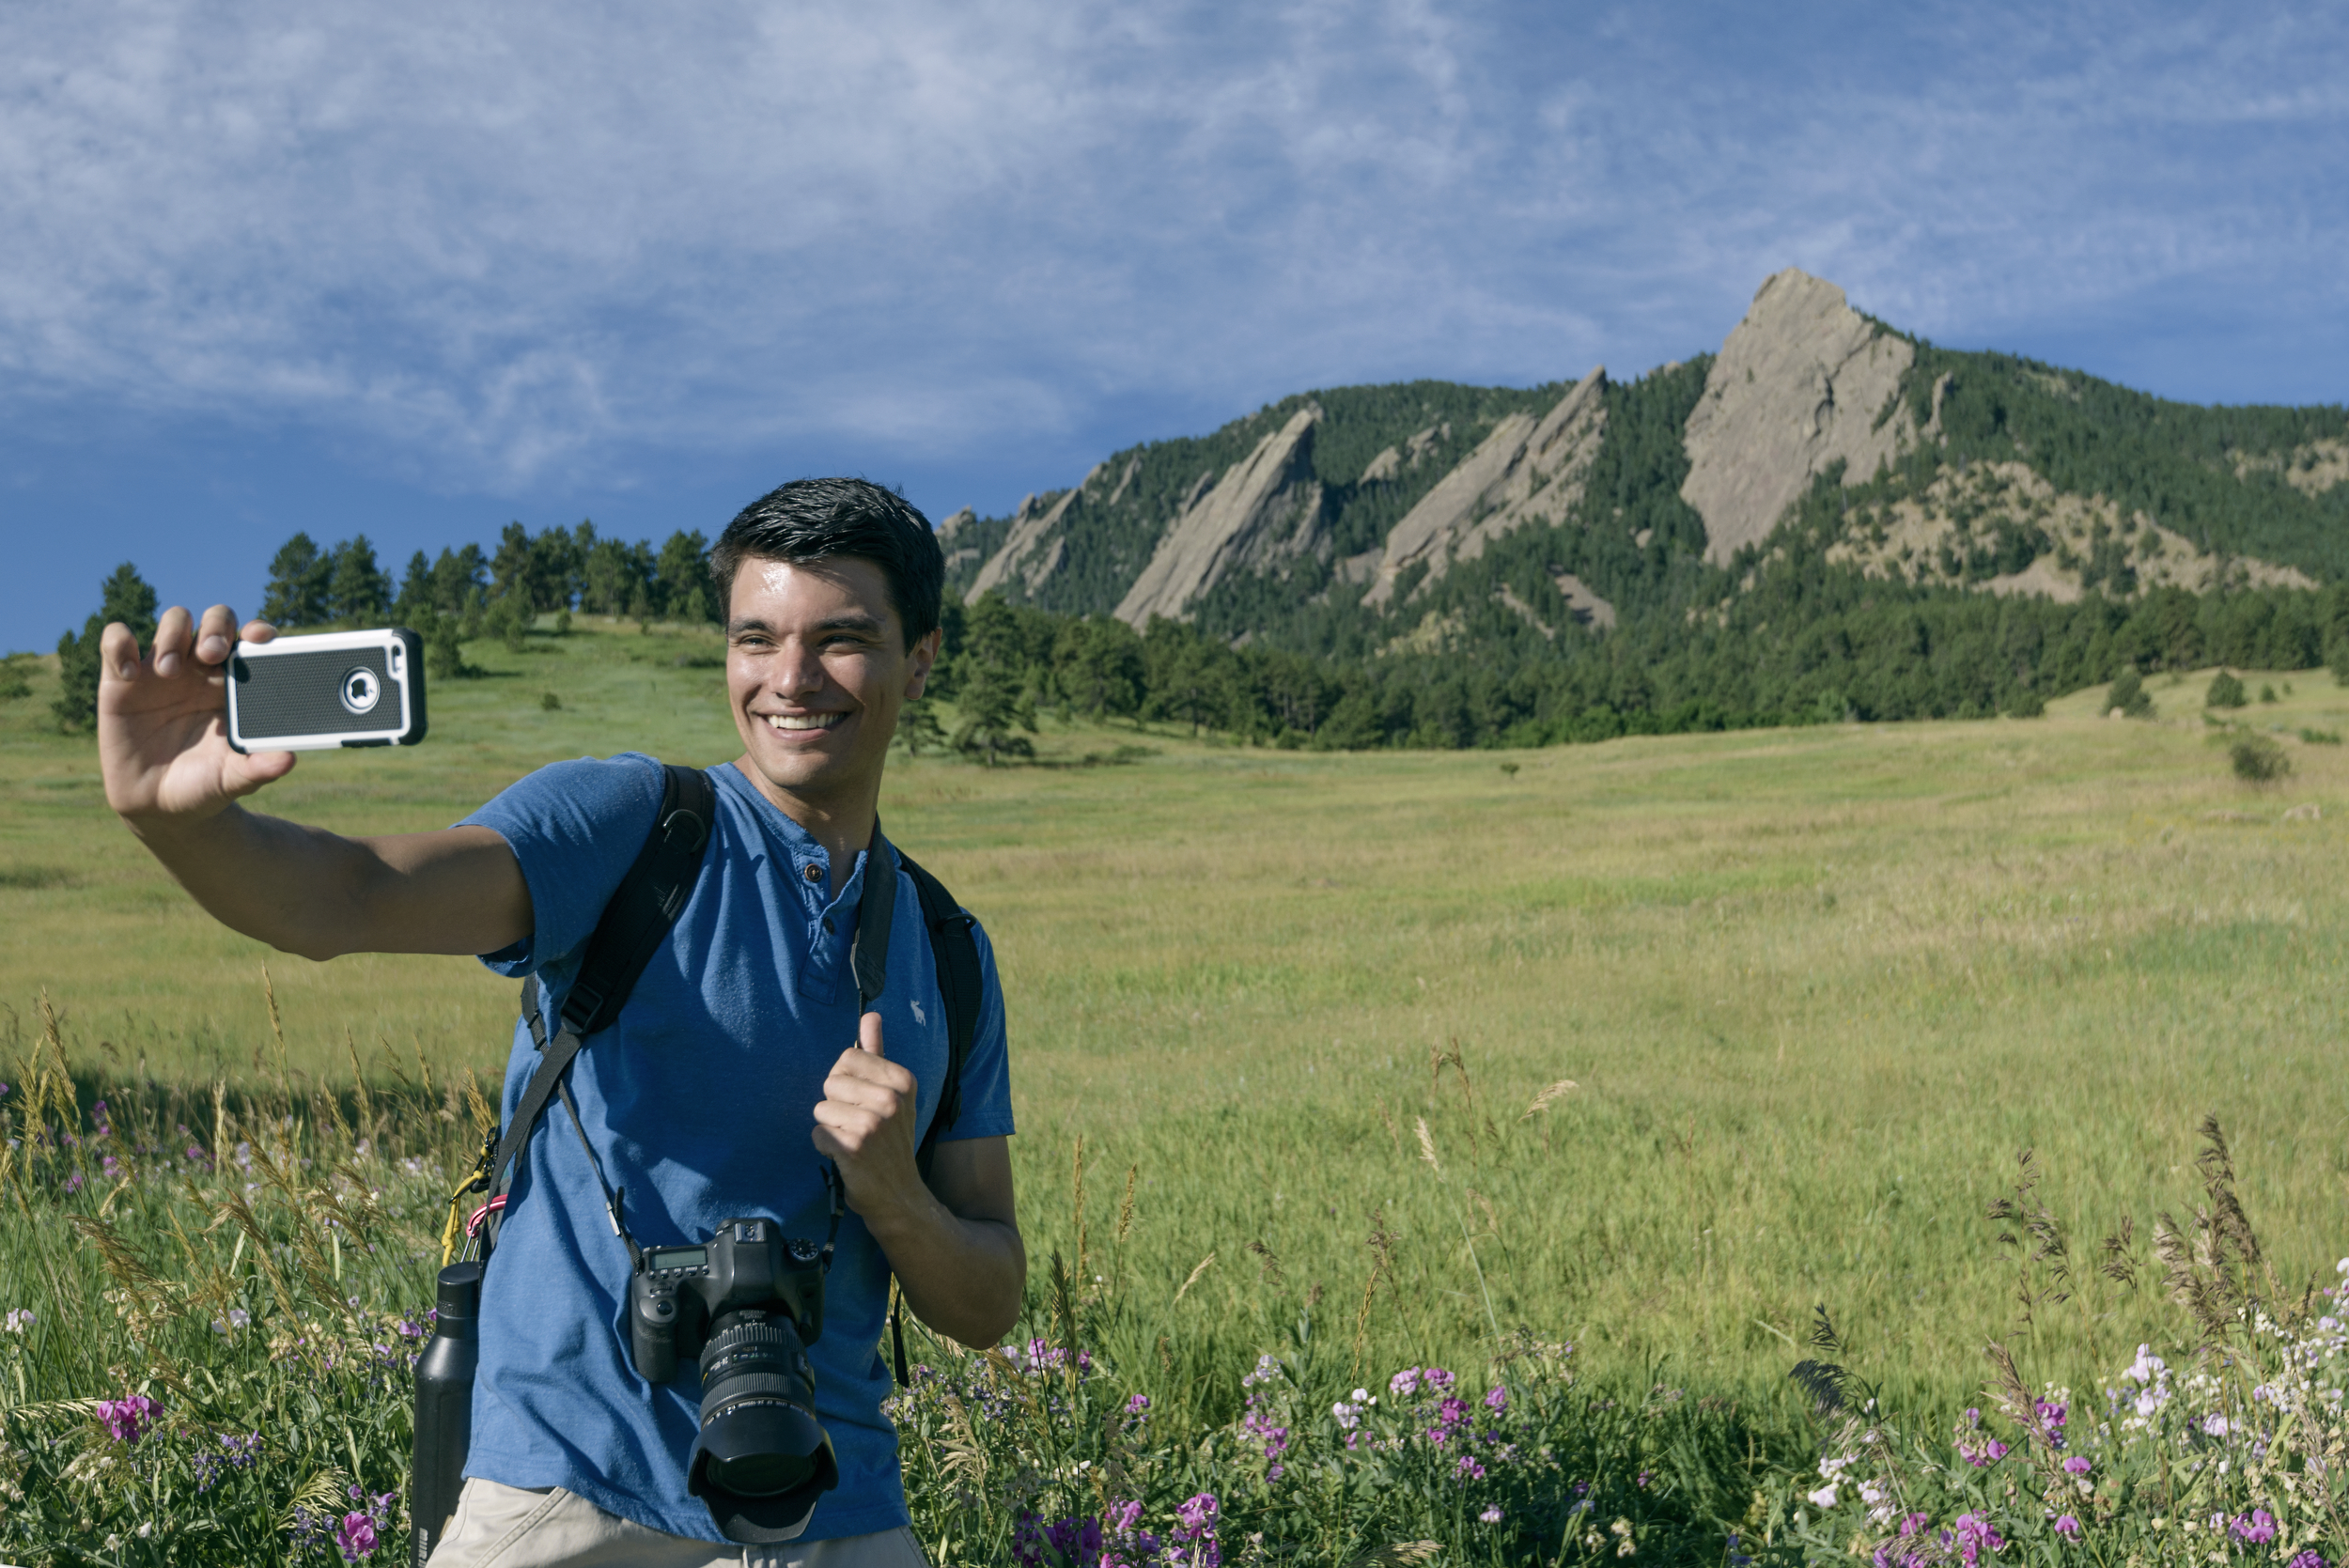 Lifestyle product photo of male taking an iPhone selfie and hiking near the Flat Irons outside of Boulder, CO.